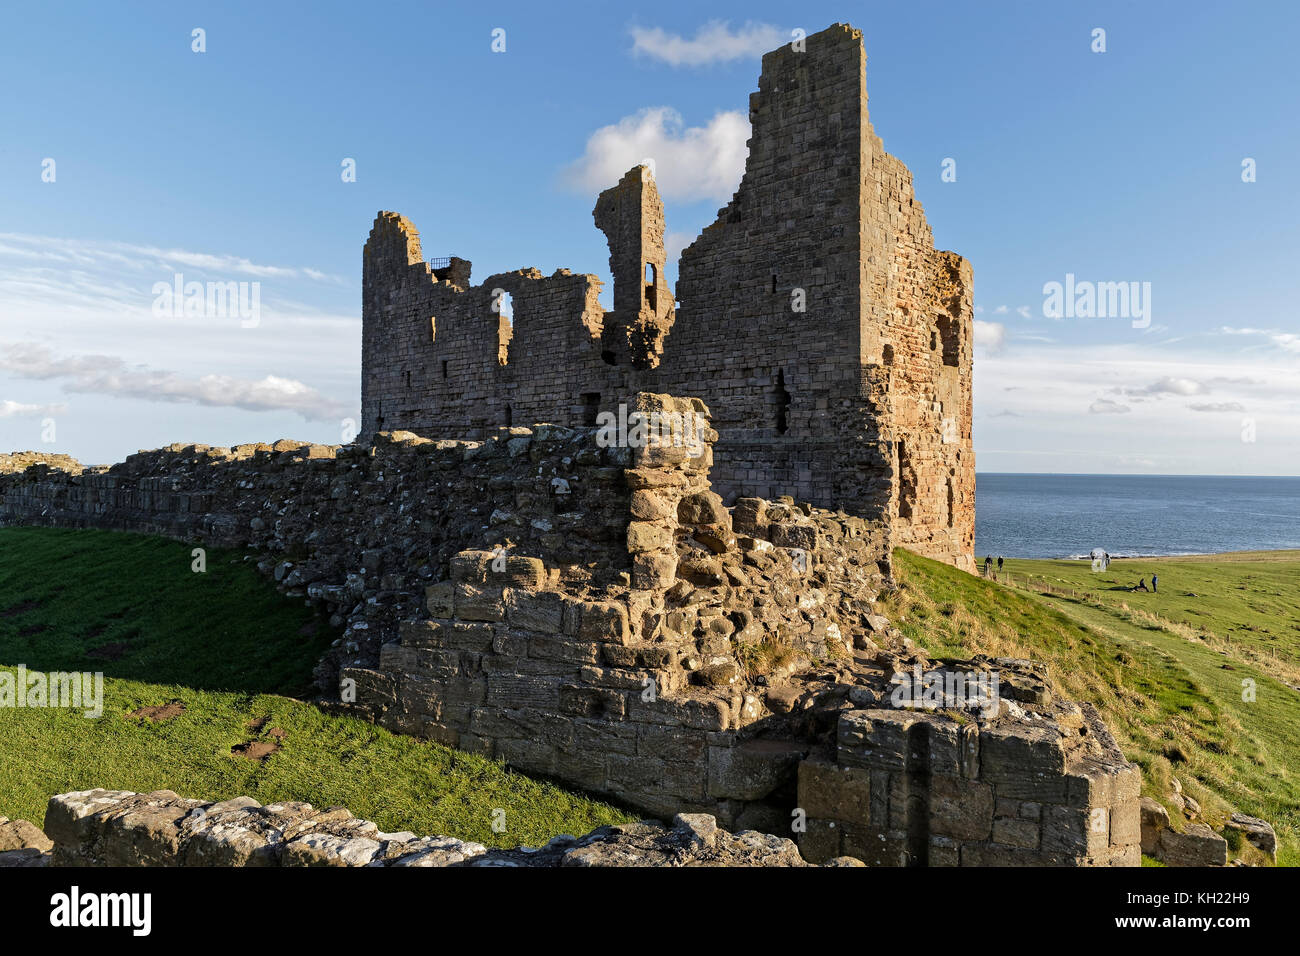 The Great Gatehouse of Dunstanburgh Castle - Stock Image